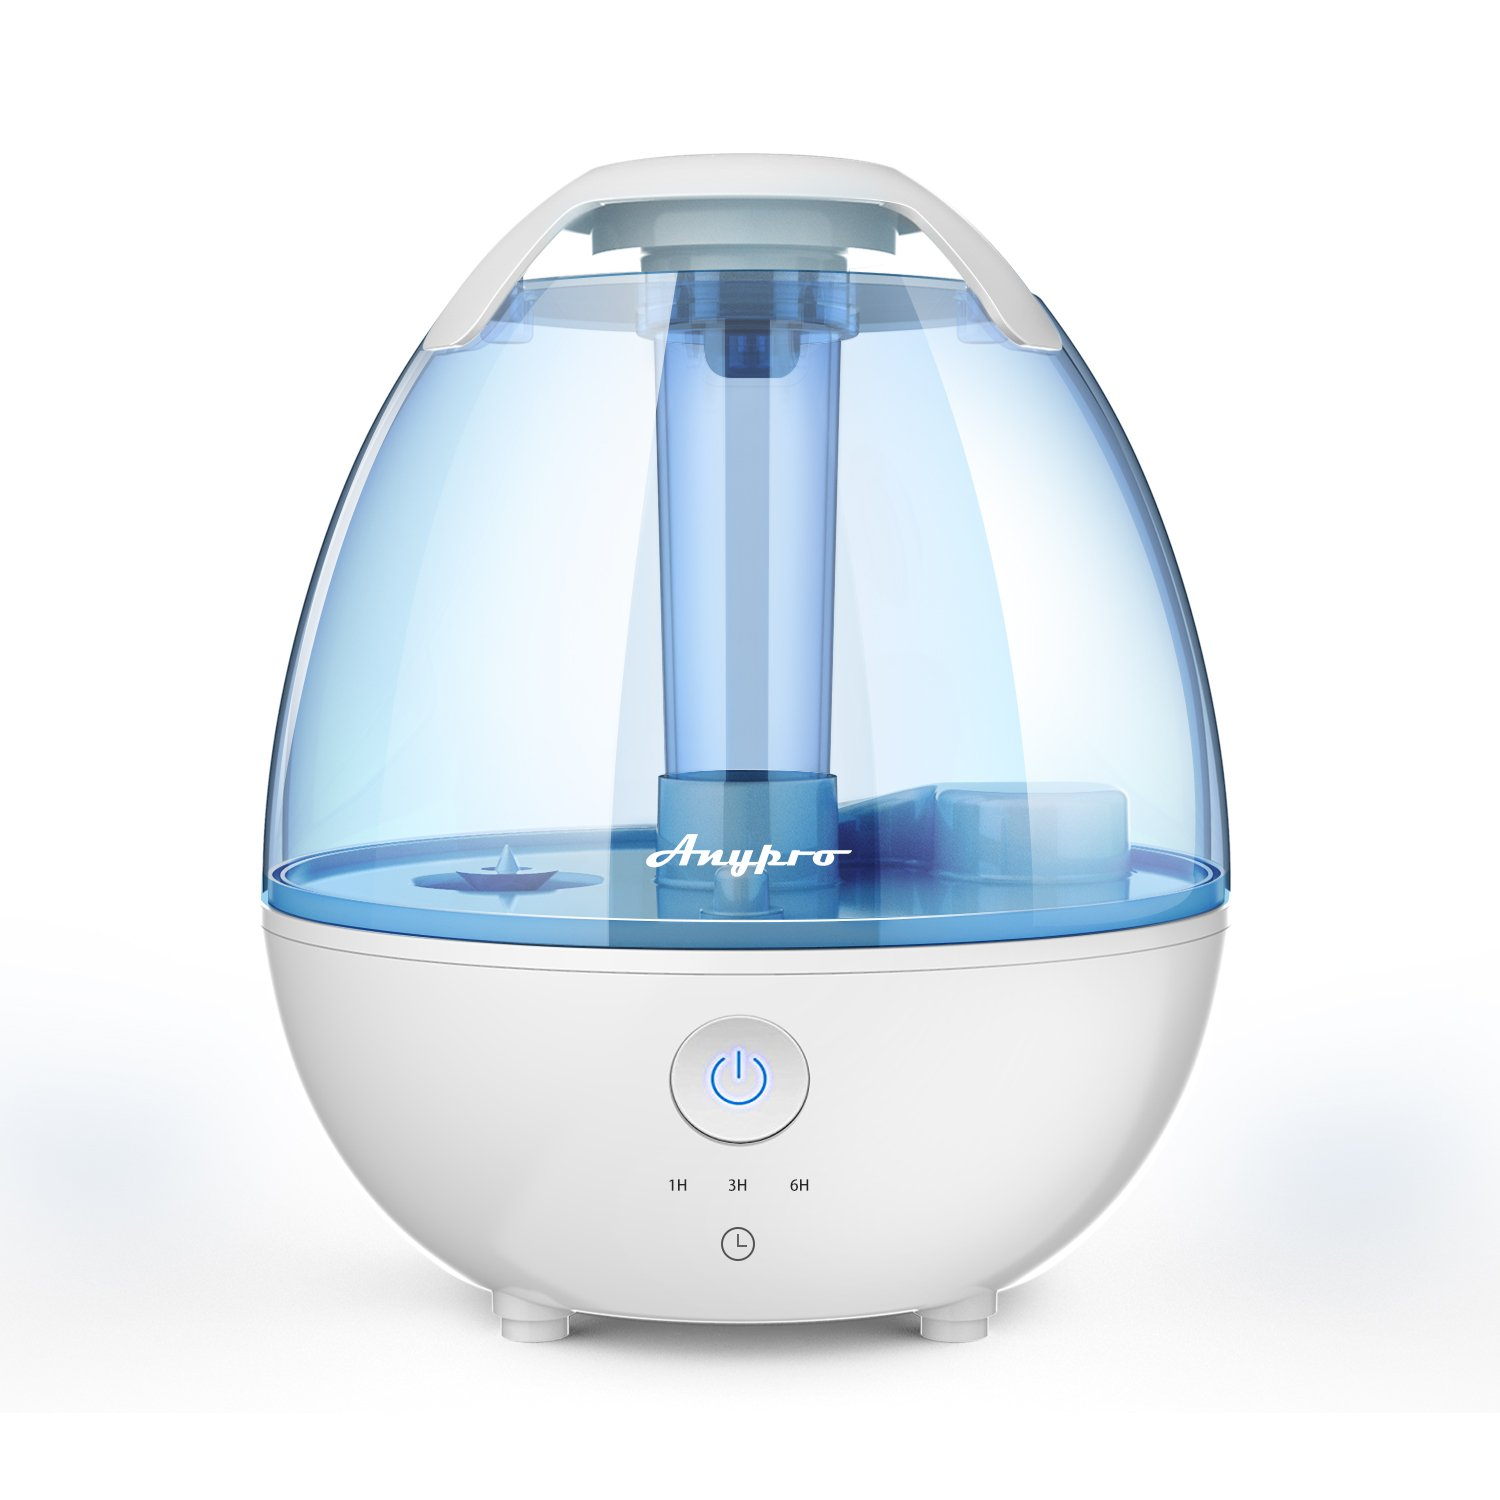 Cool Mist Humidifier – 0.5 gallon/2L Ultrasonic Air Humidifier with Low/High Mist Levels, 3-Timer Settings and Night Light, Auto Shut-off Function Safe and Ideal for Baby, Kids and 350sqf Rooms